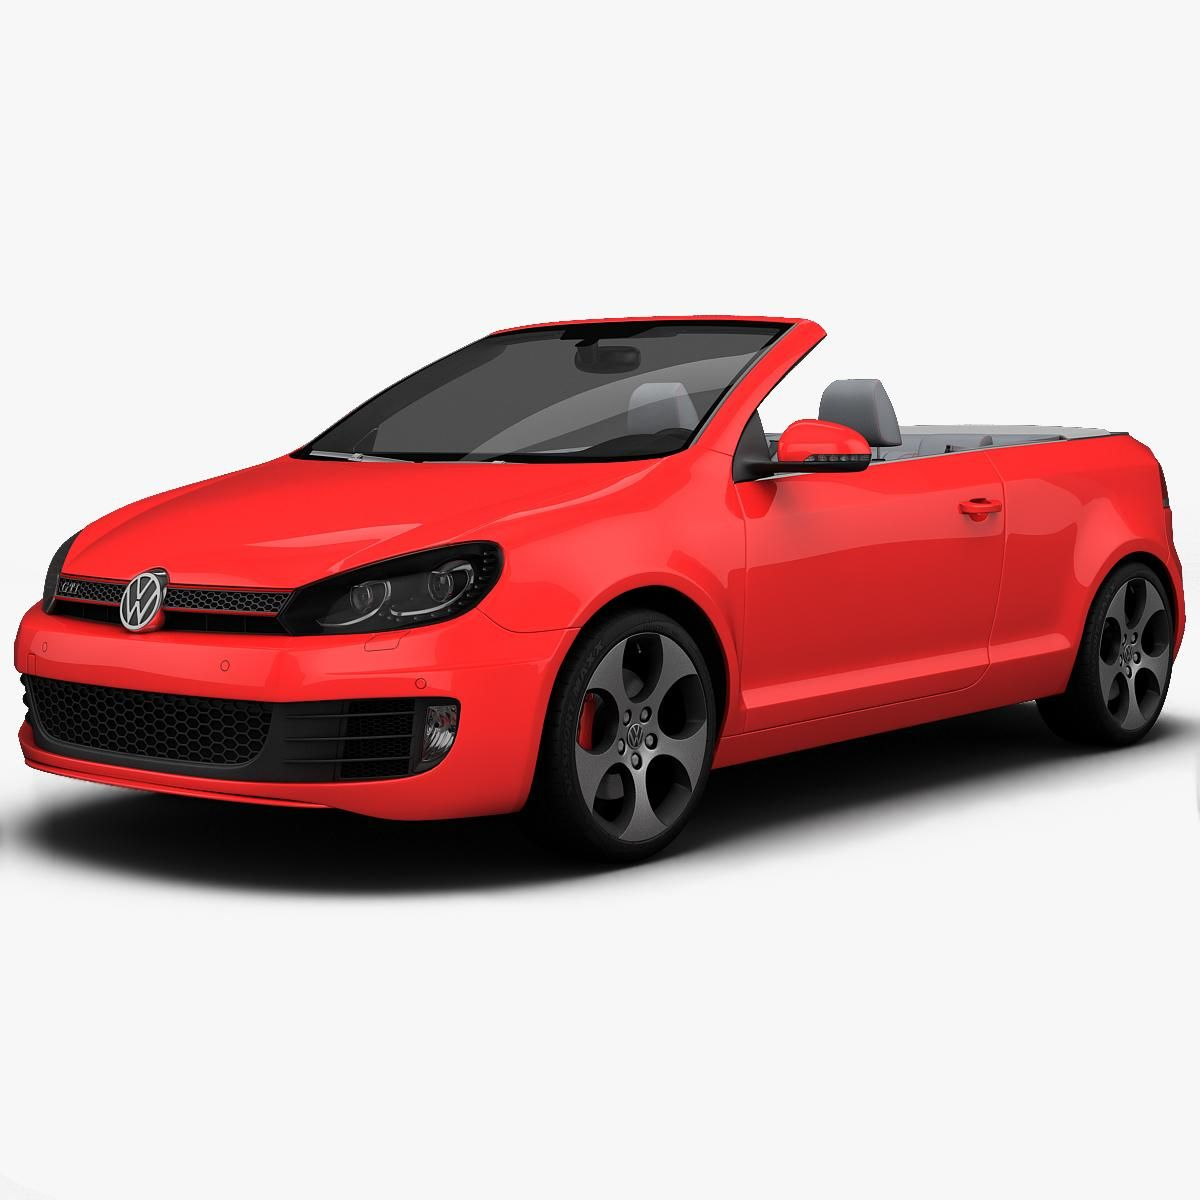 Volkswagen Golf Gti Cabriolet 2013 3d Model Ad Gti Golf